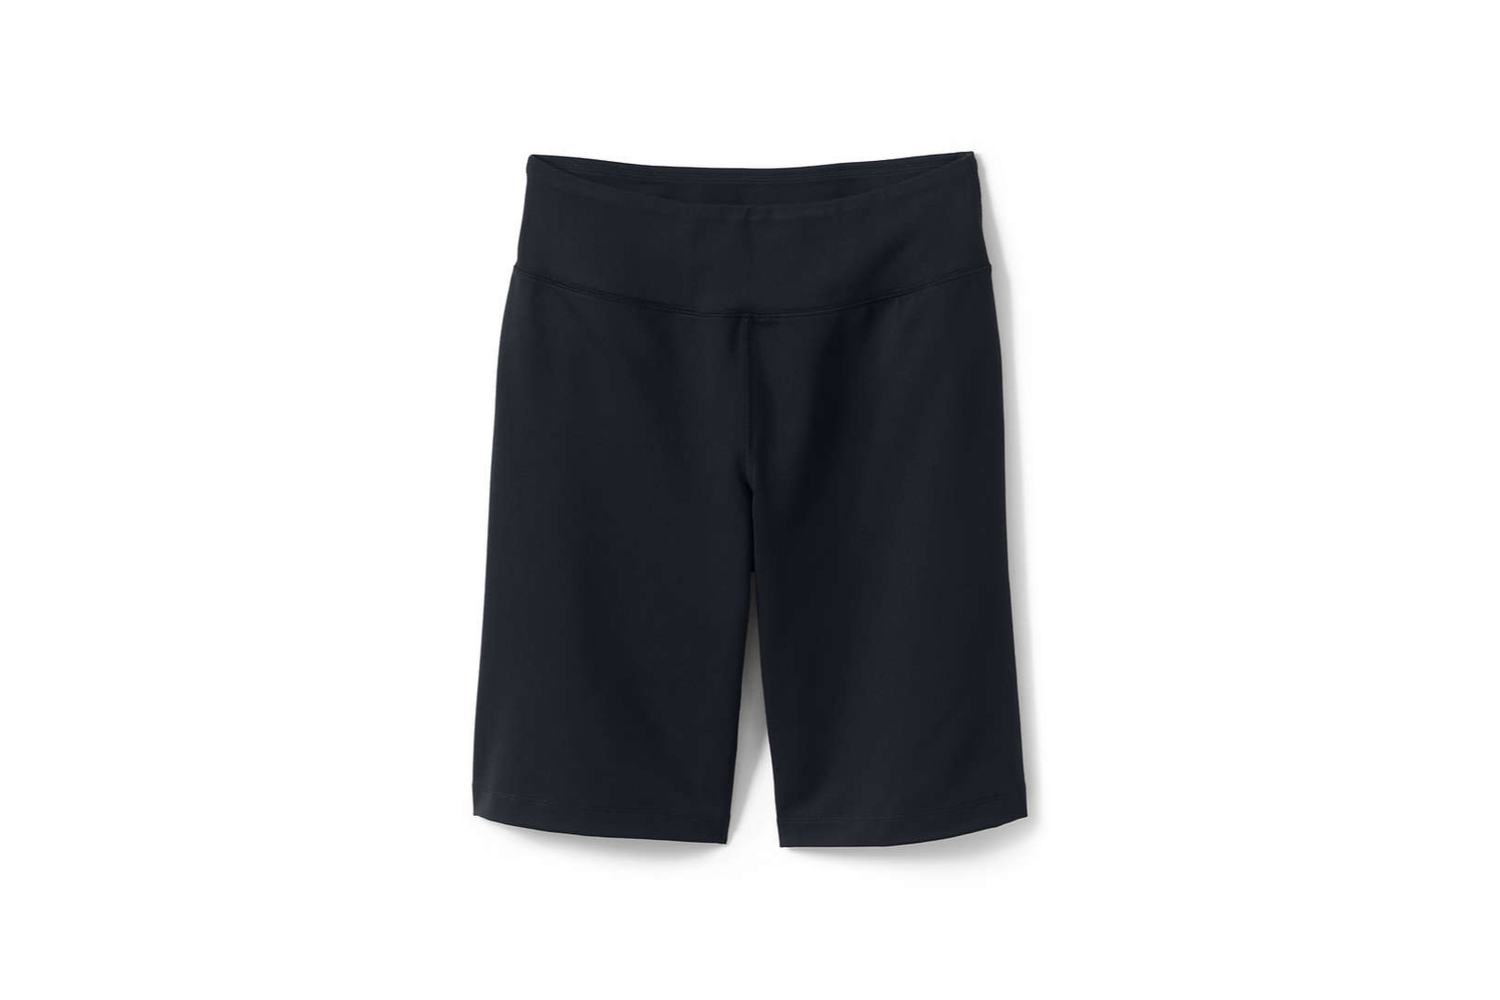 best workout shorts for women over 50